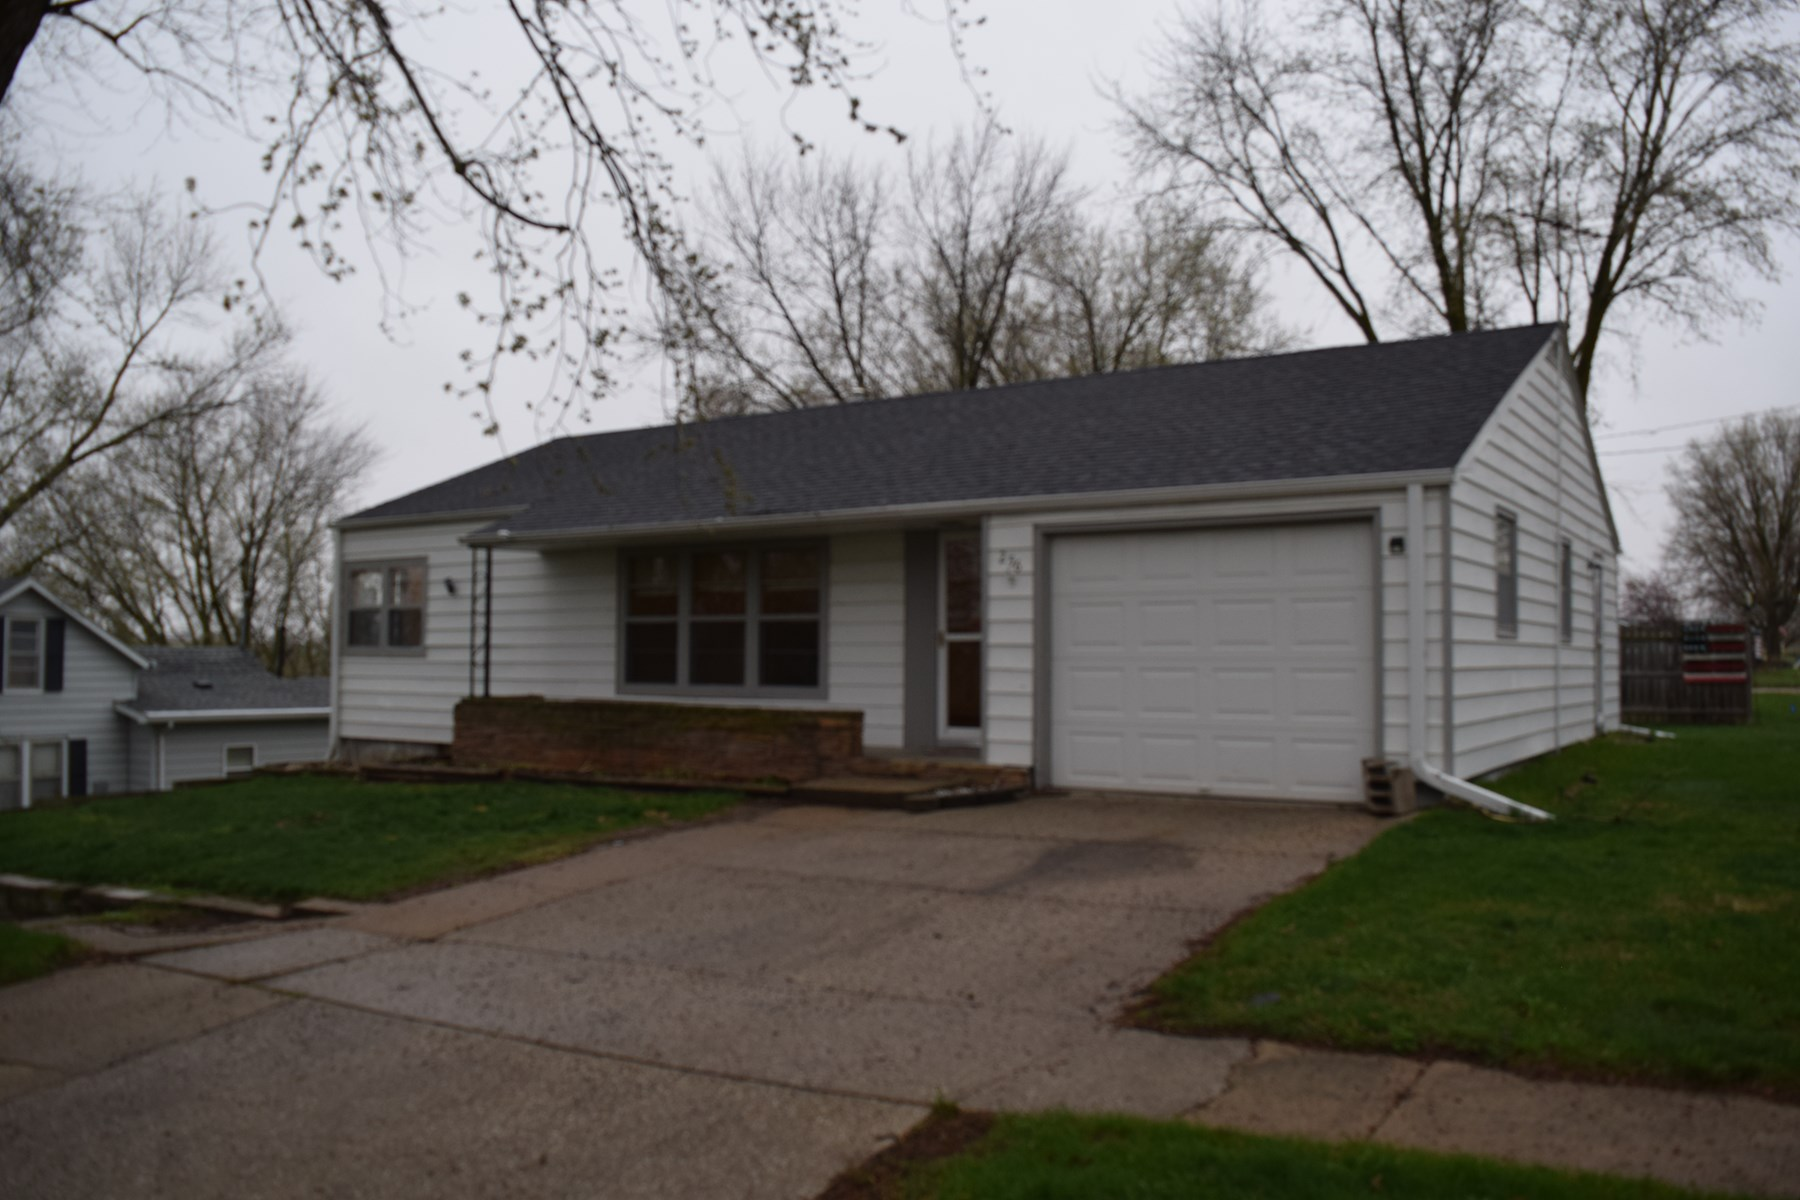 Ranch-Style Home, Walk-out Basement, Earling, IA, Shelby Co.